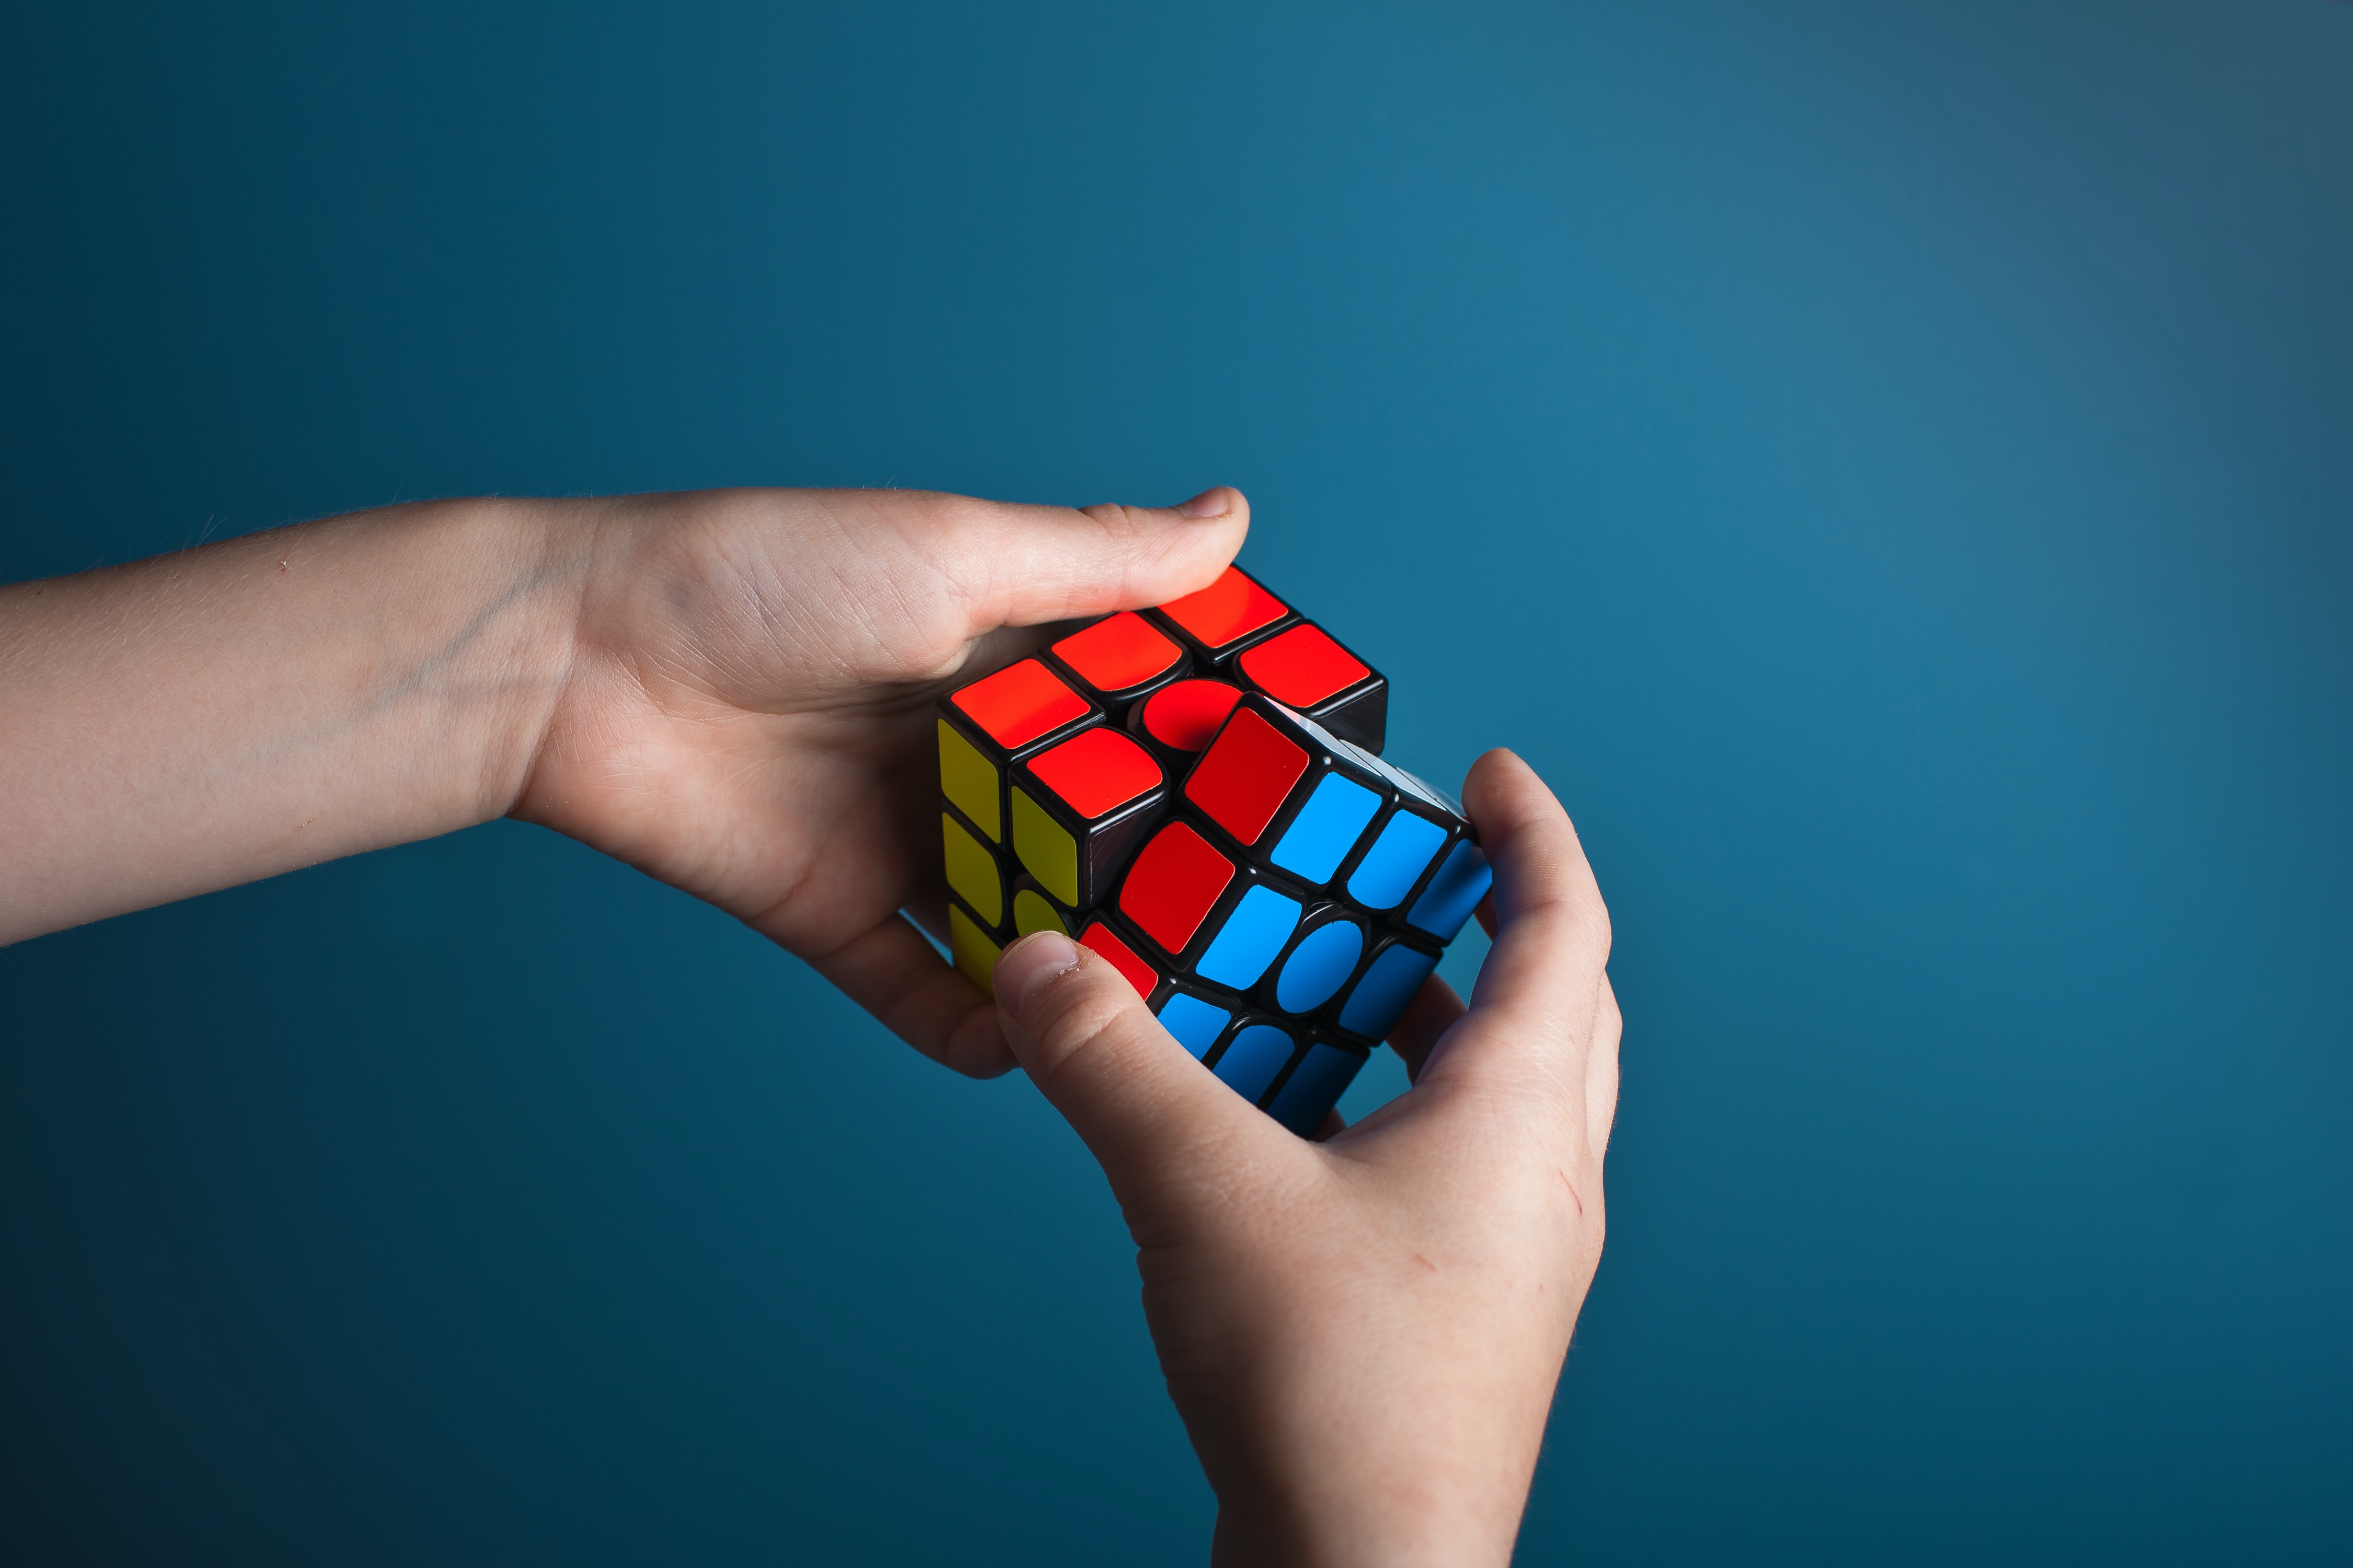 image of solving a Rubik's Cube